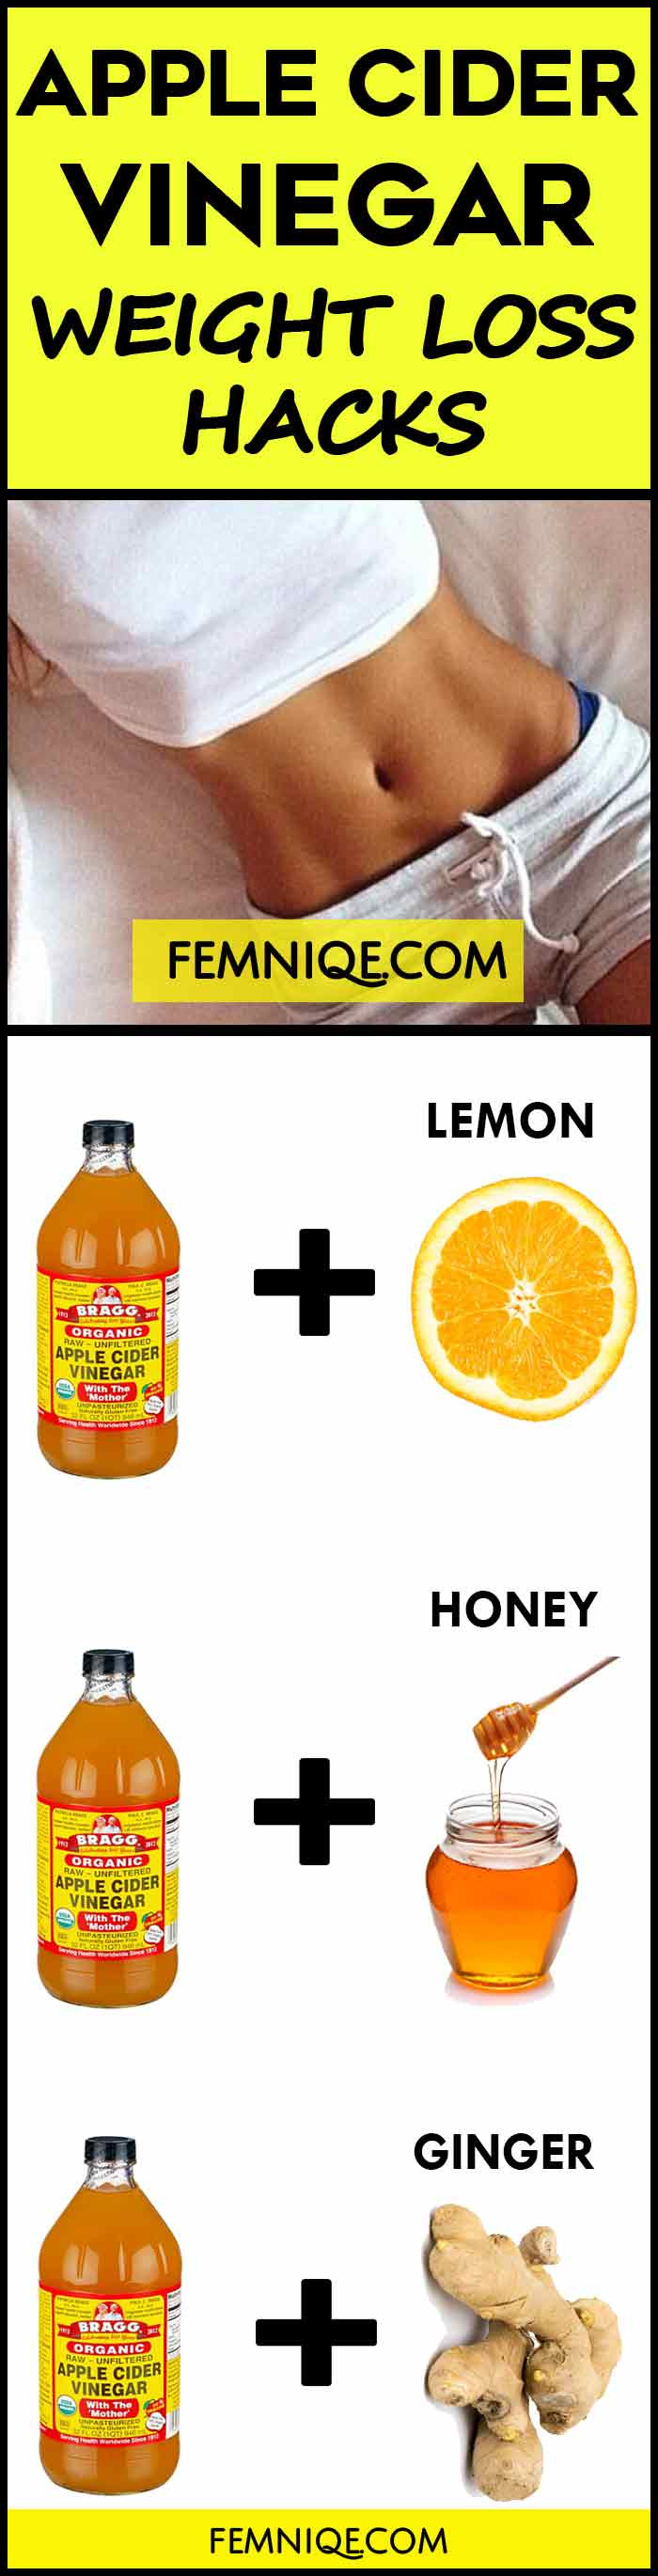 Apple Cider Vinegar And Weight Loss  How To Use Apple Cider Vinegar for Weight Loss Femniqe